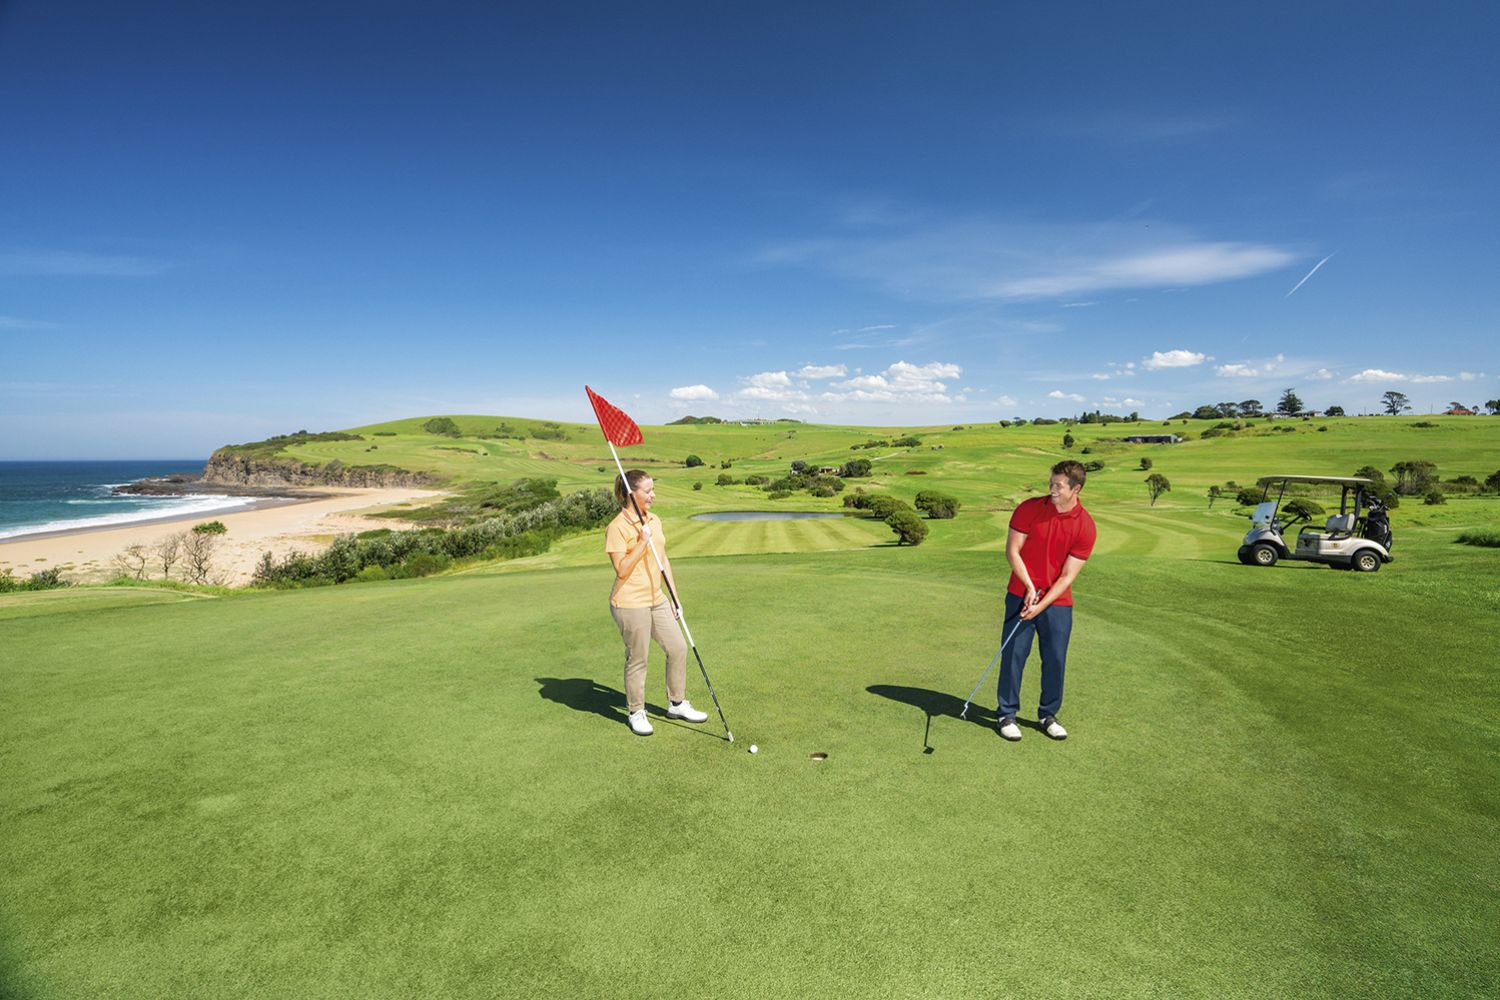 Couple enjoying a scenic round of golf at Kiama Golf Club on the South Coast